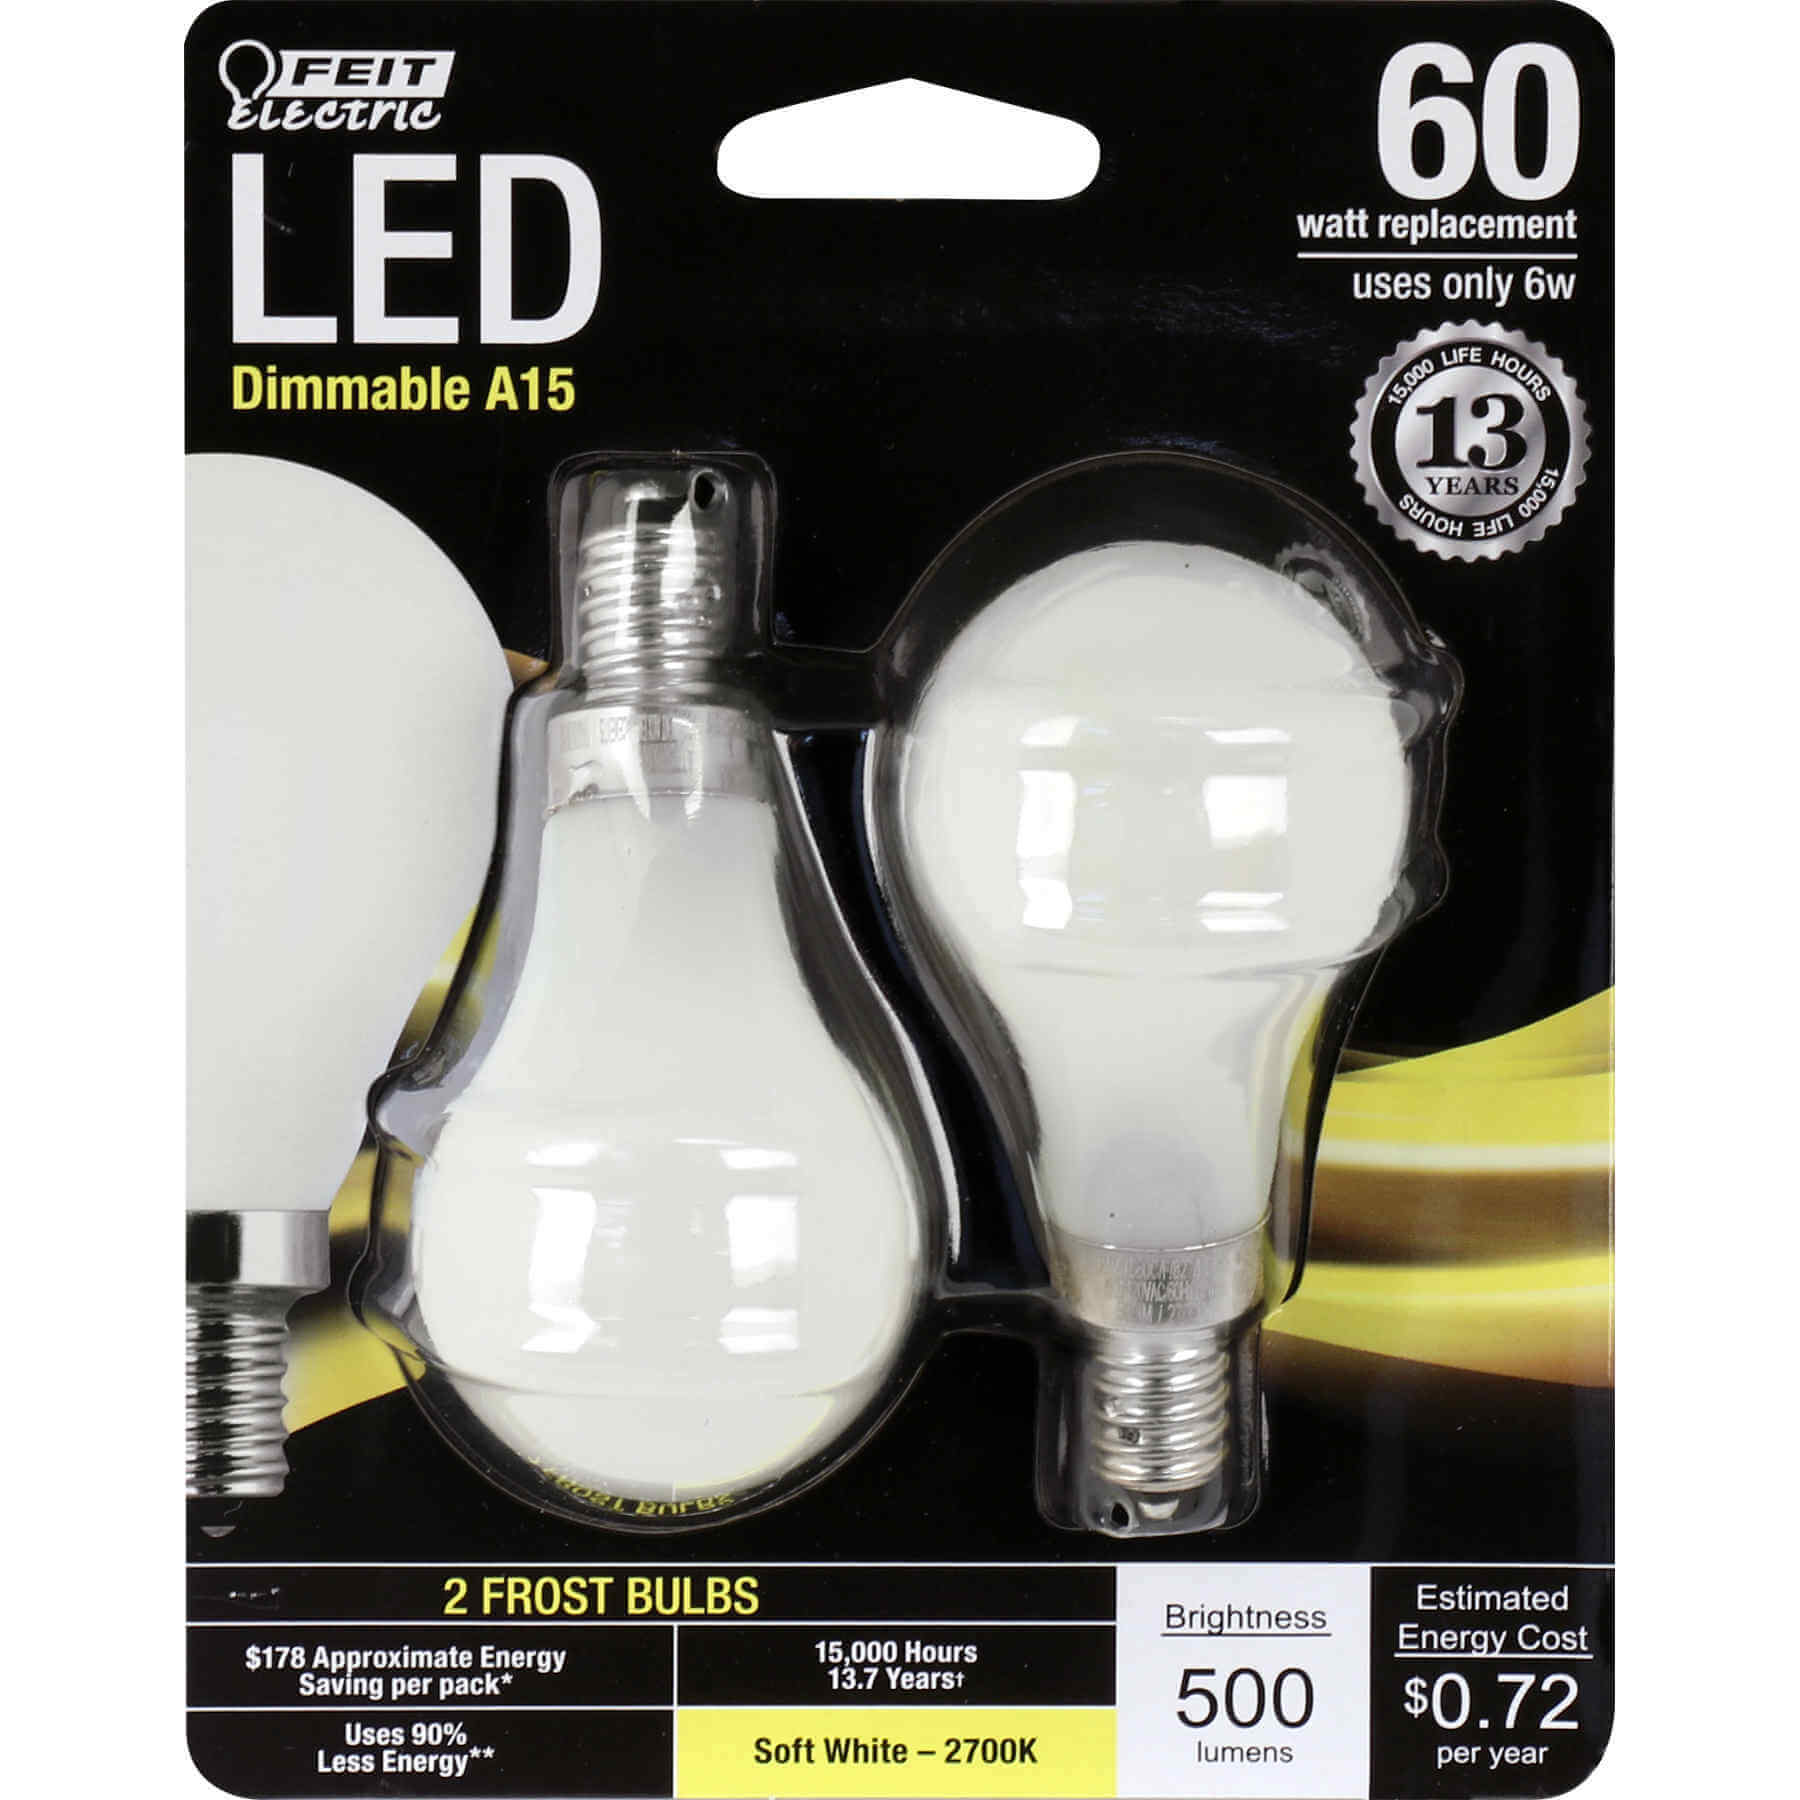 500 Lumen Is Hoeveel Watt 500 Lumen 2700k Dimmable Led Feit Electric